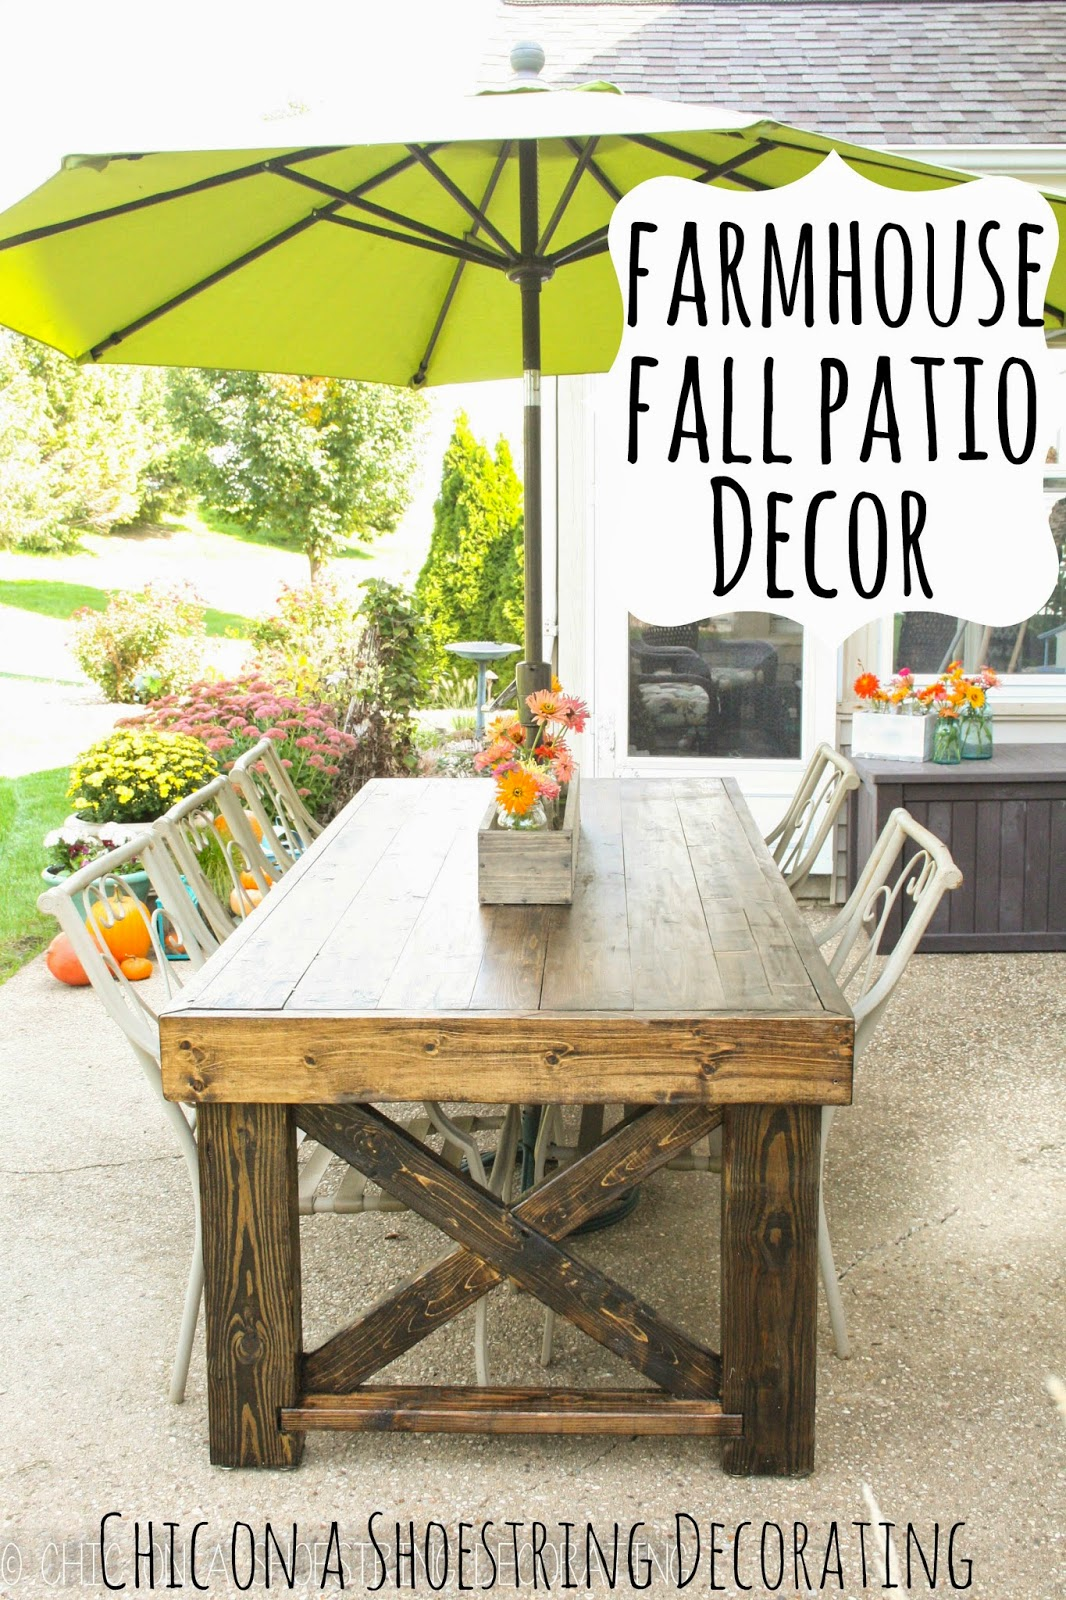 Farmhouse Fall Decor Chic On A Shoestring Decorating Blog